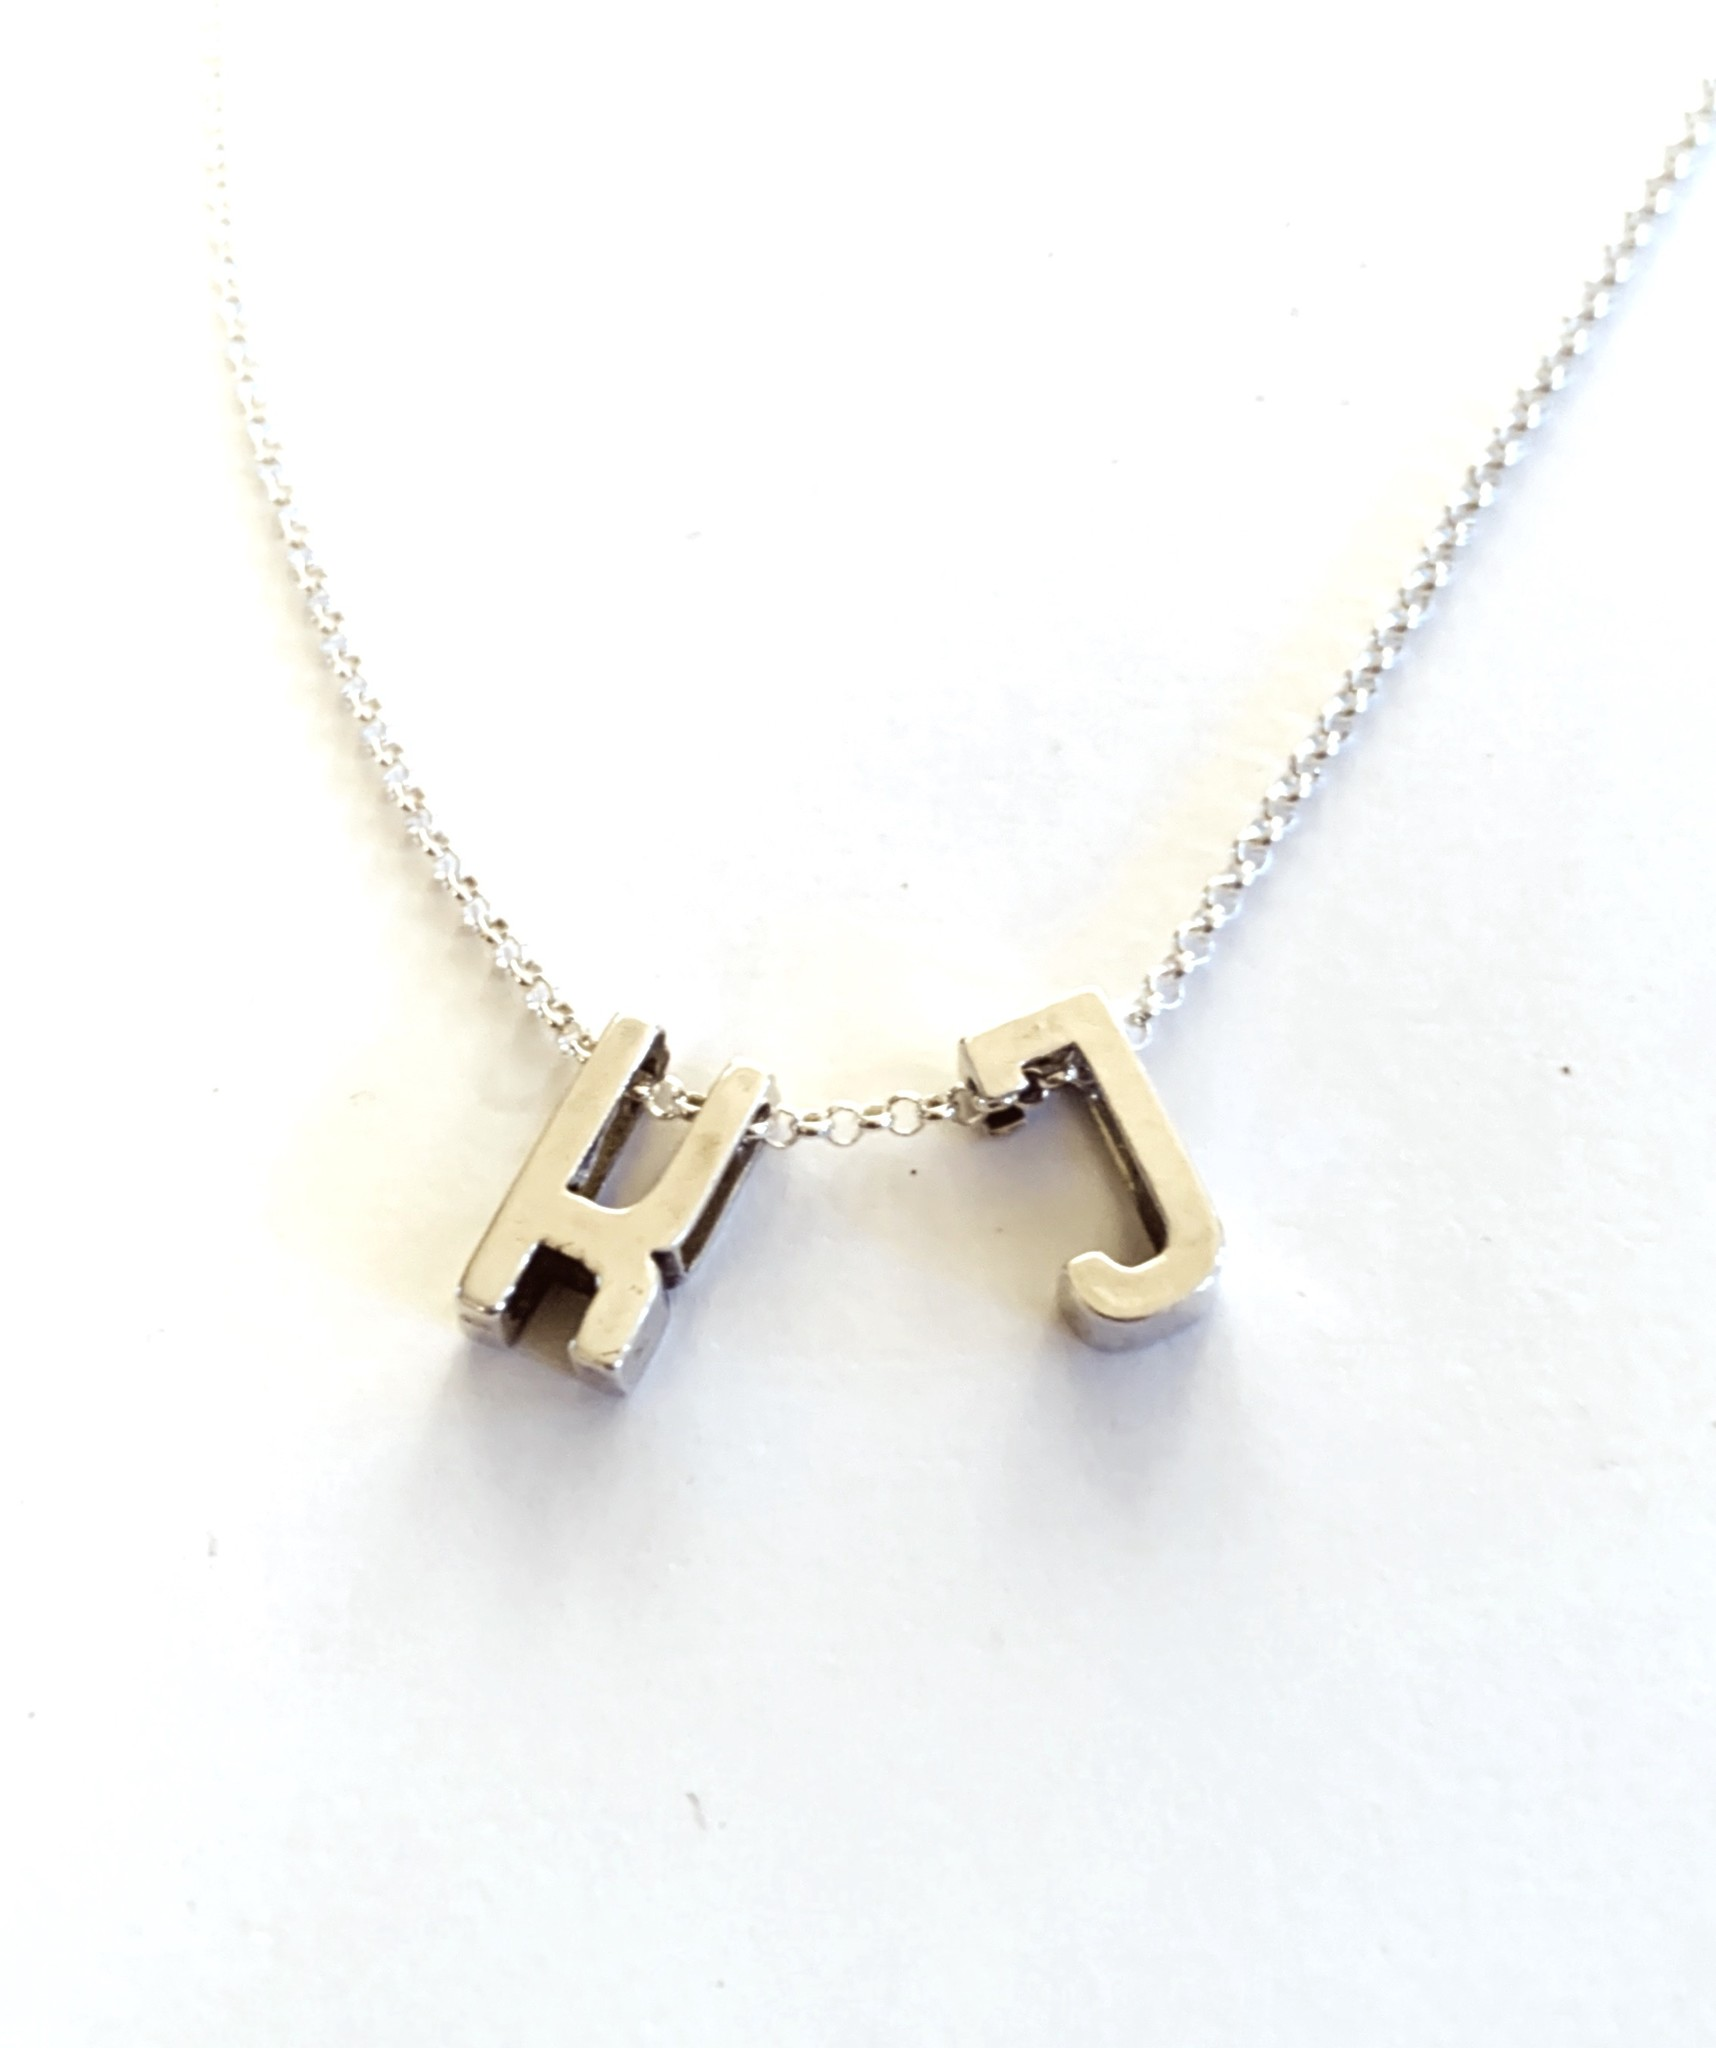 Cadeau idee Silver necklace with letter